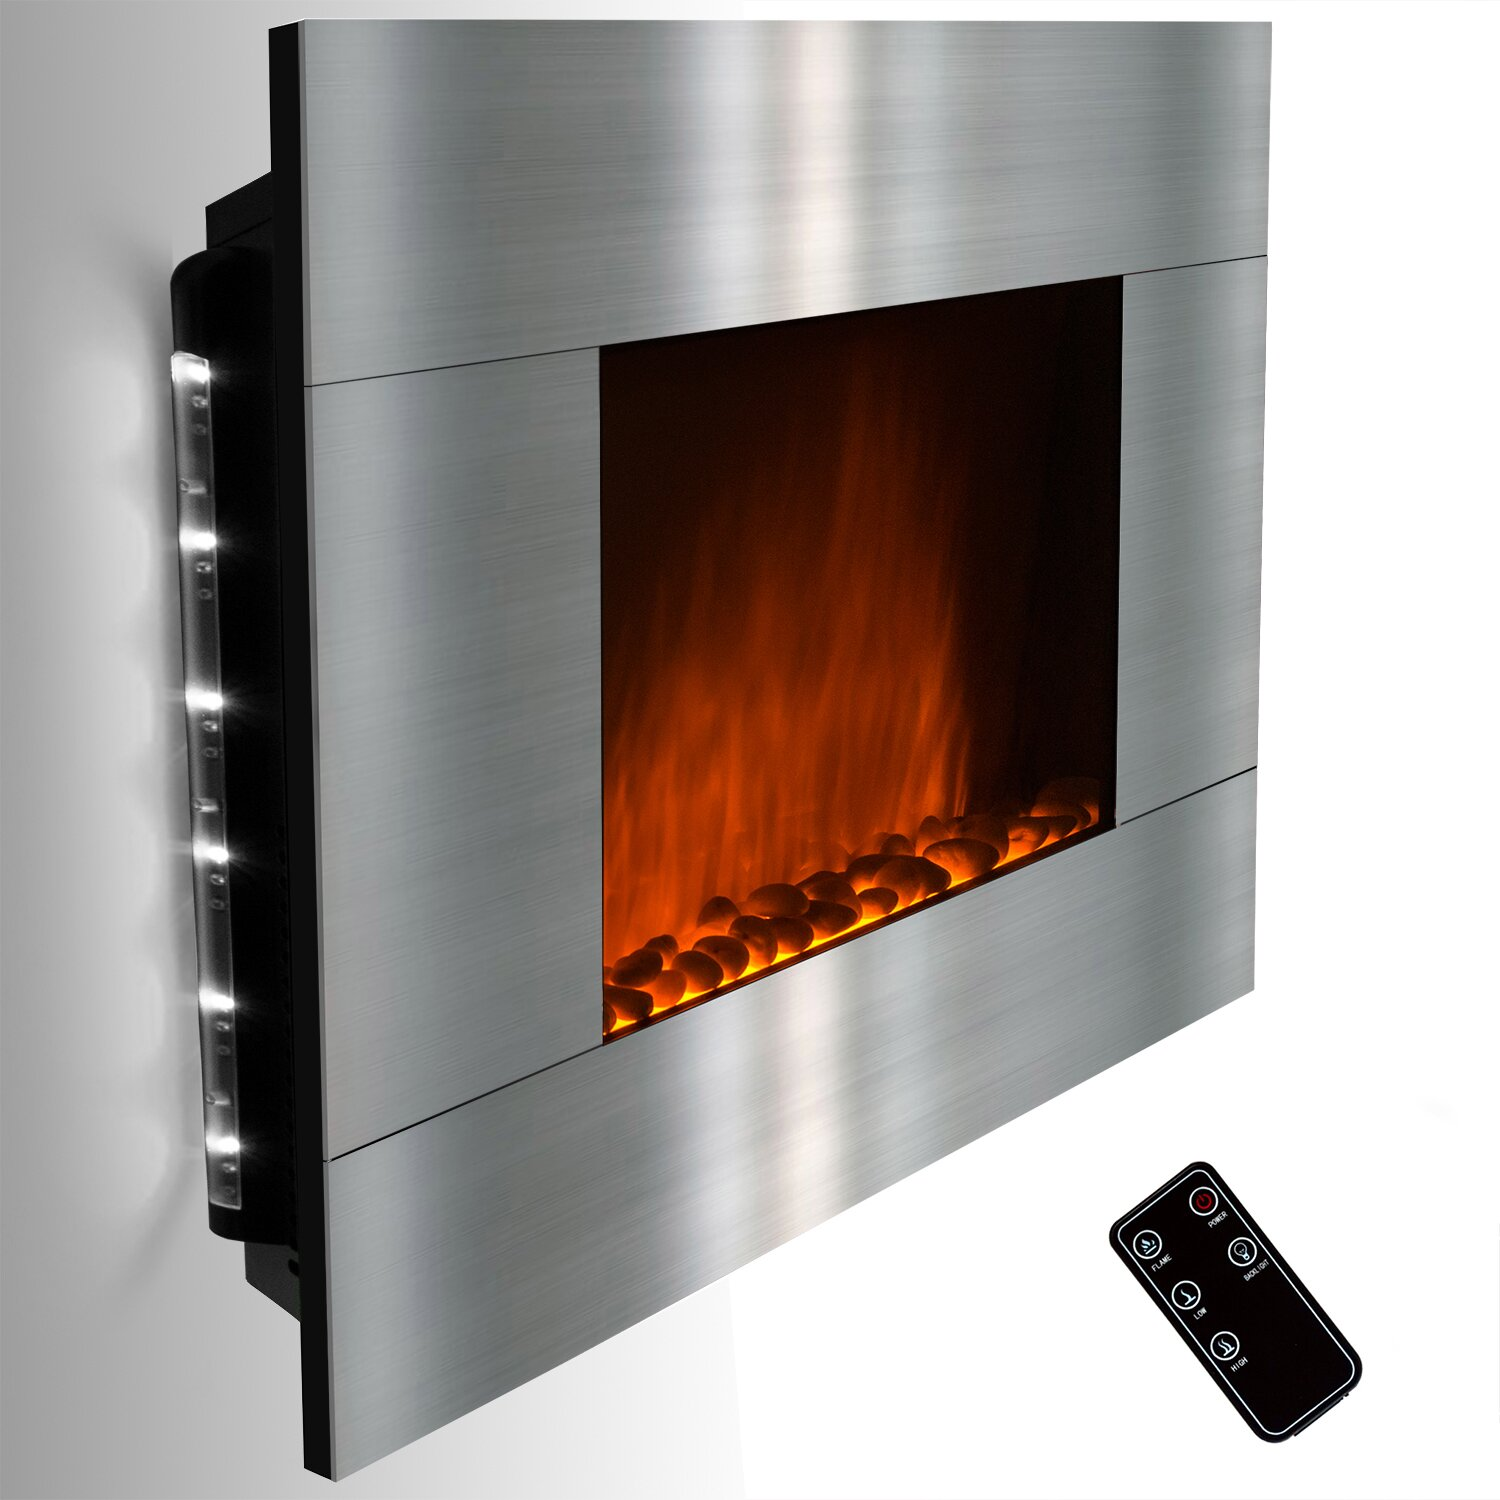 Goldenvantage Wall Mount Electric Fireplace Amp Reviews